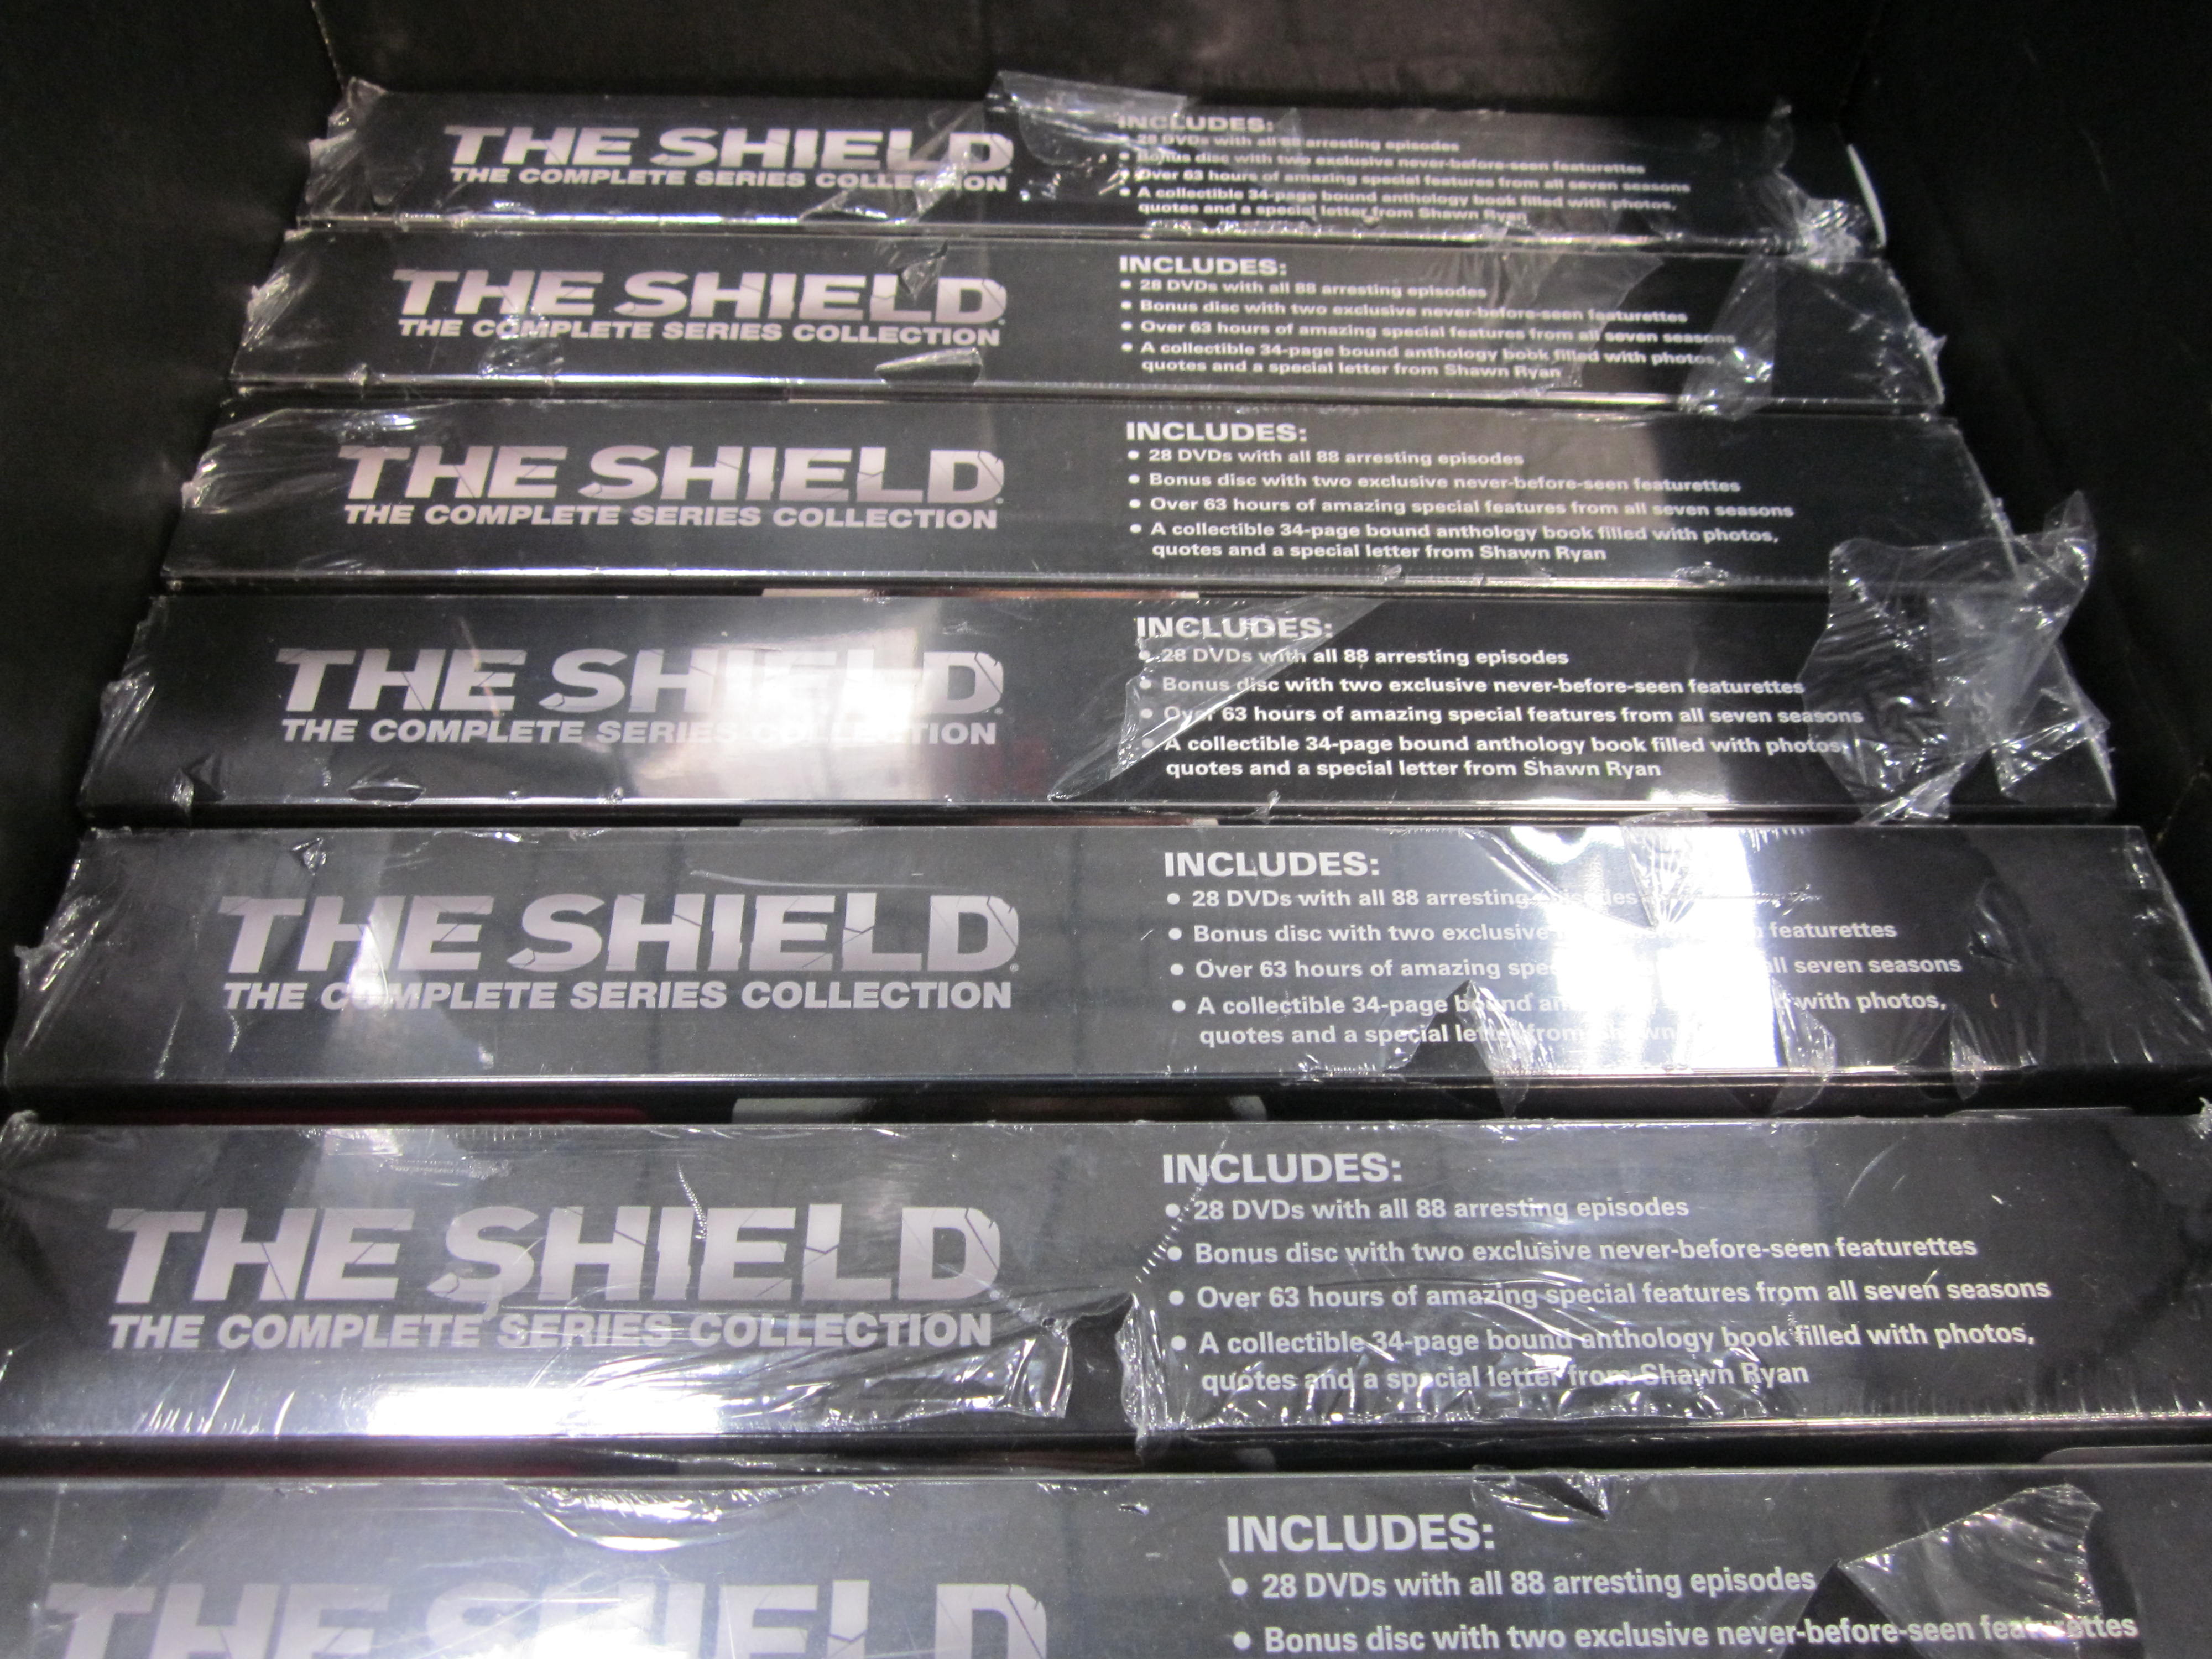 ... Shield Complete Series Collection DVD box set at Costco, SSF ECR.JPG